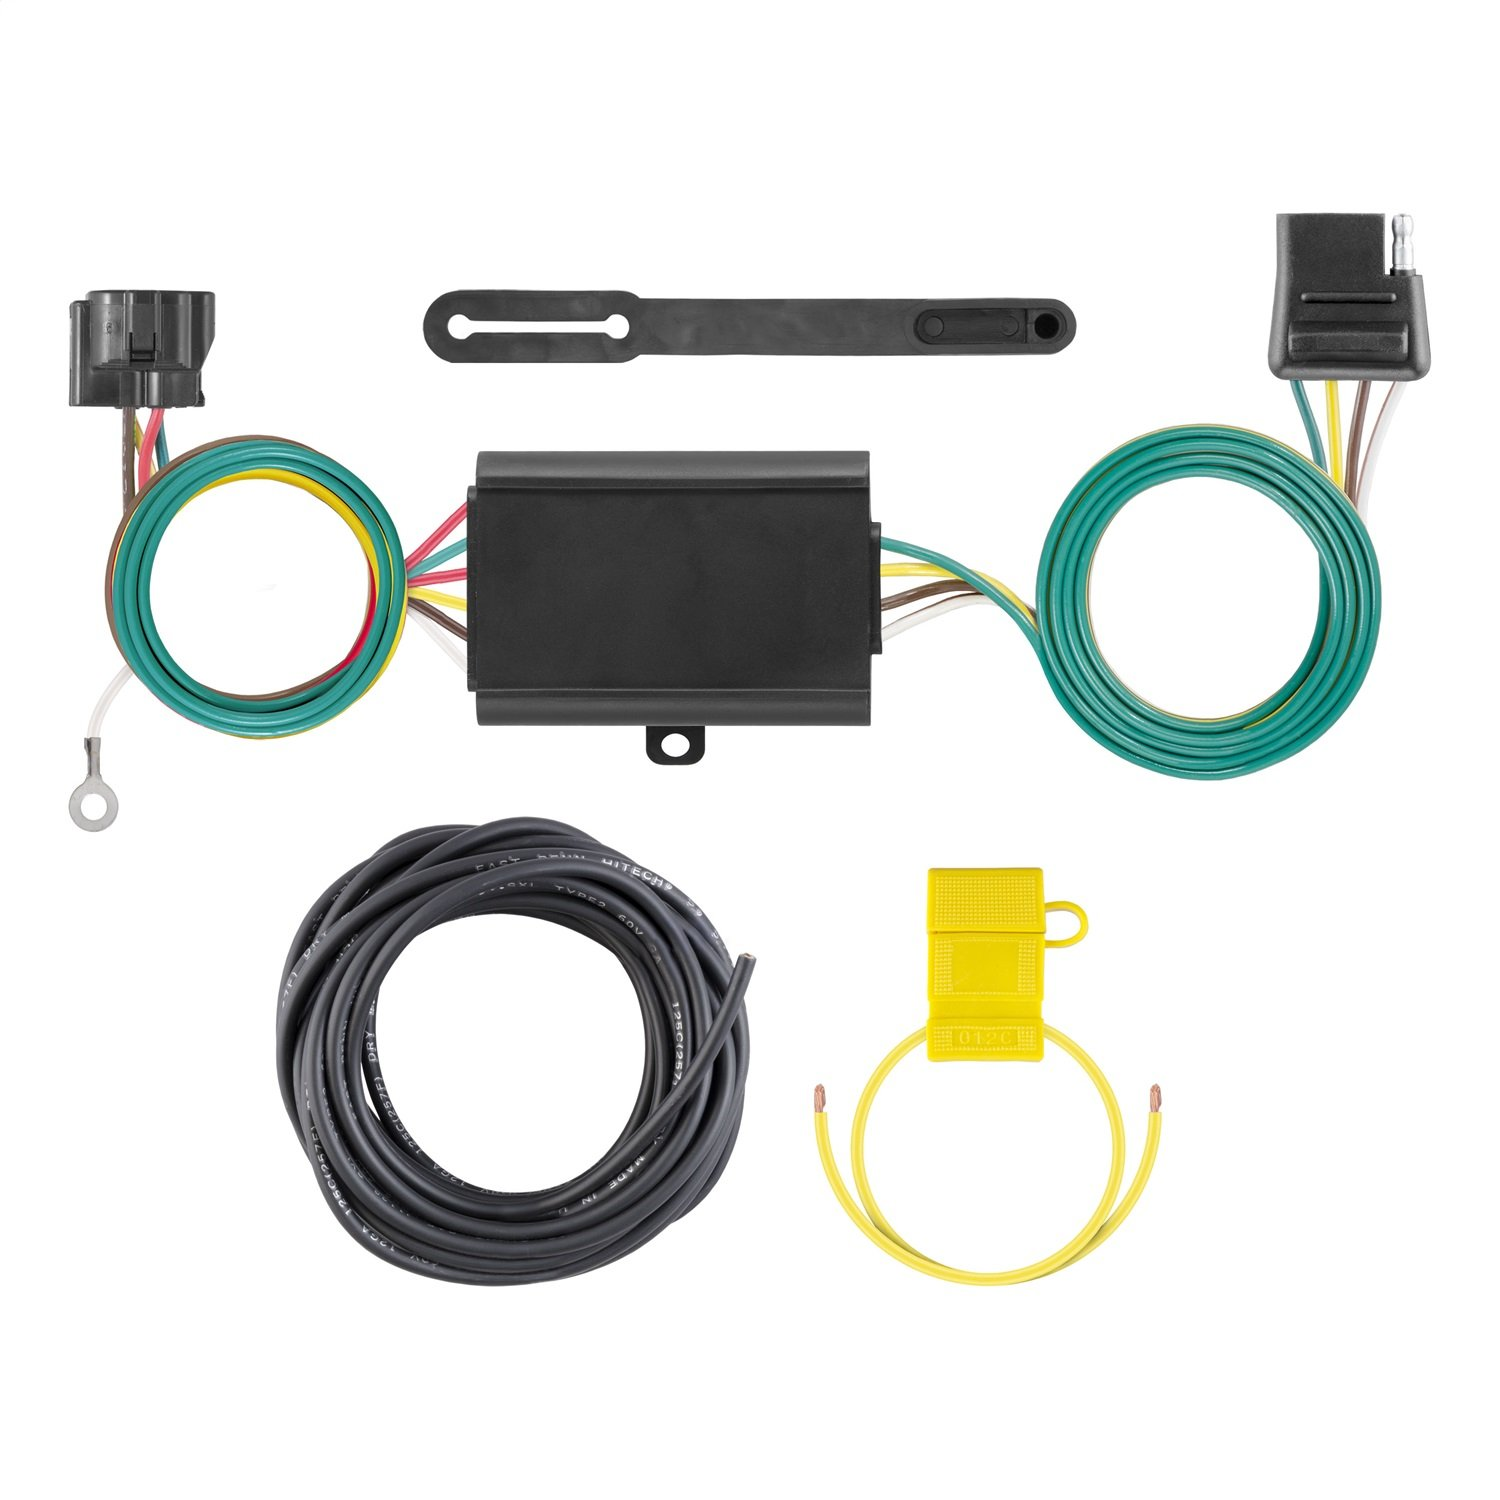 Curt Manufacturing 58920 Custom Vehicle RV Wiring Harness Add-On for Dinghy Towing